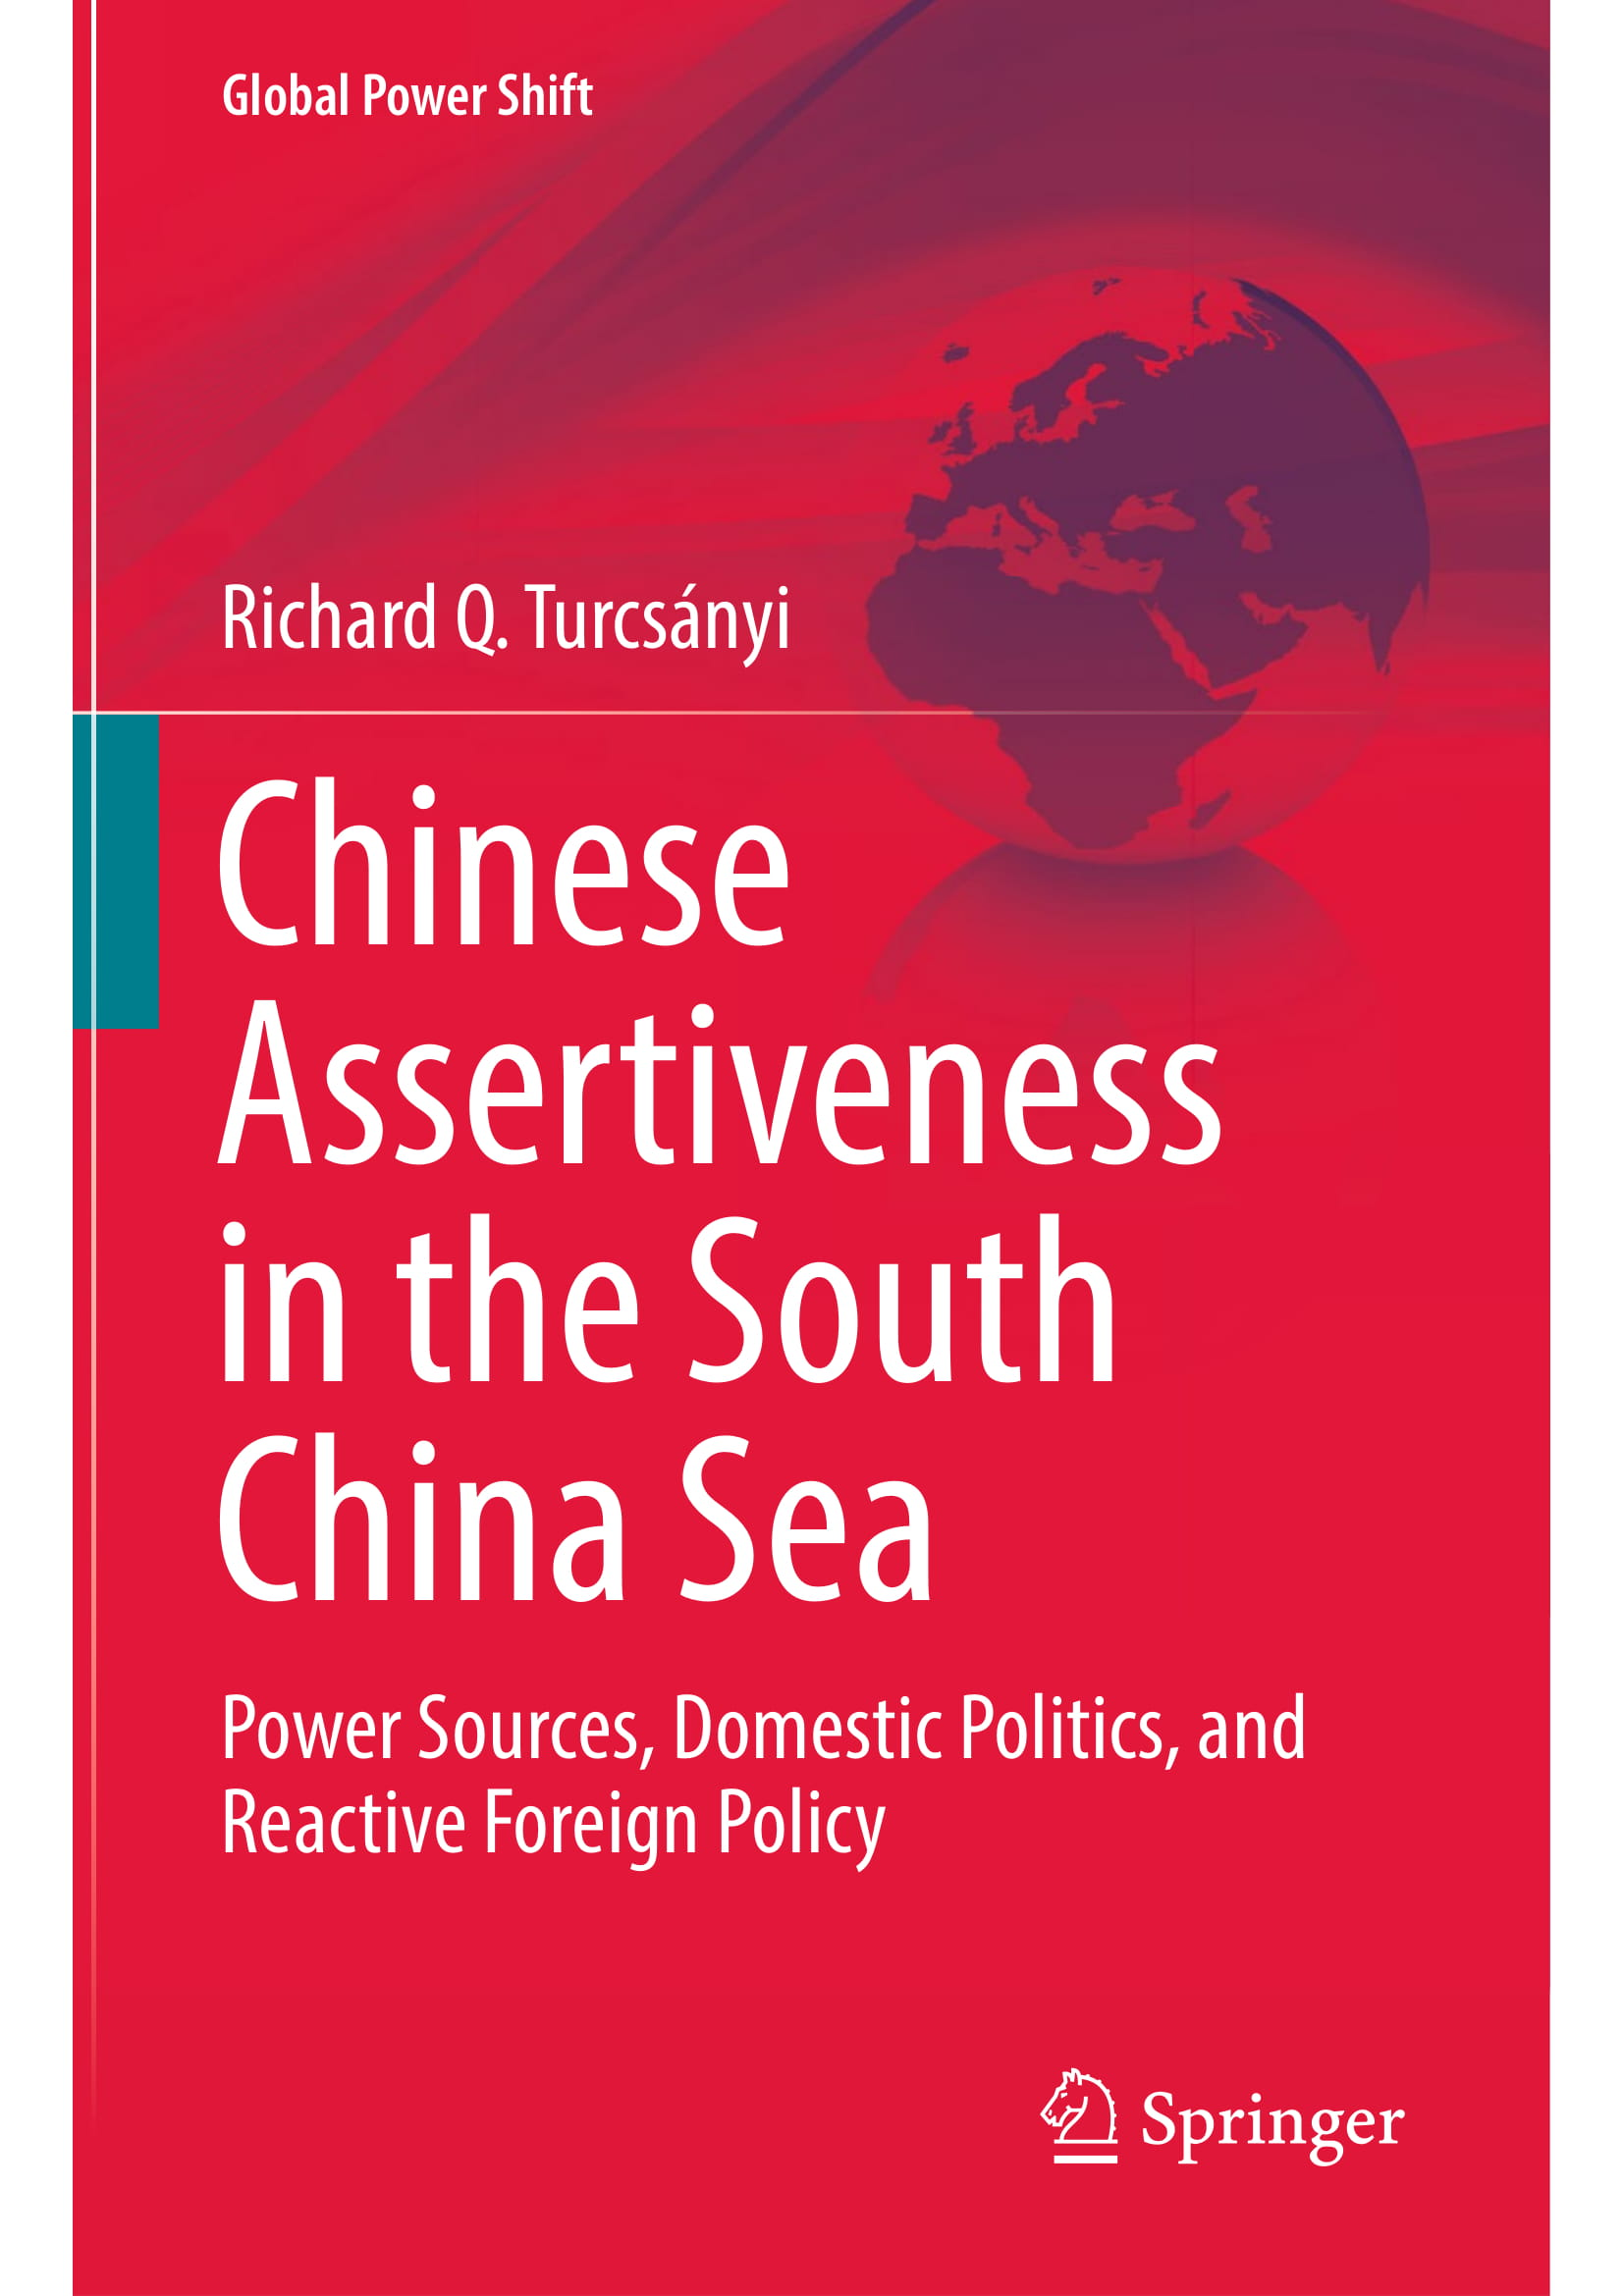 Chinese_Assertiveness_in_the_South_China-1.jpg